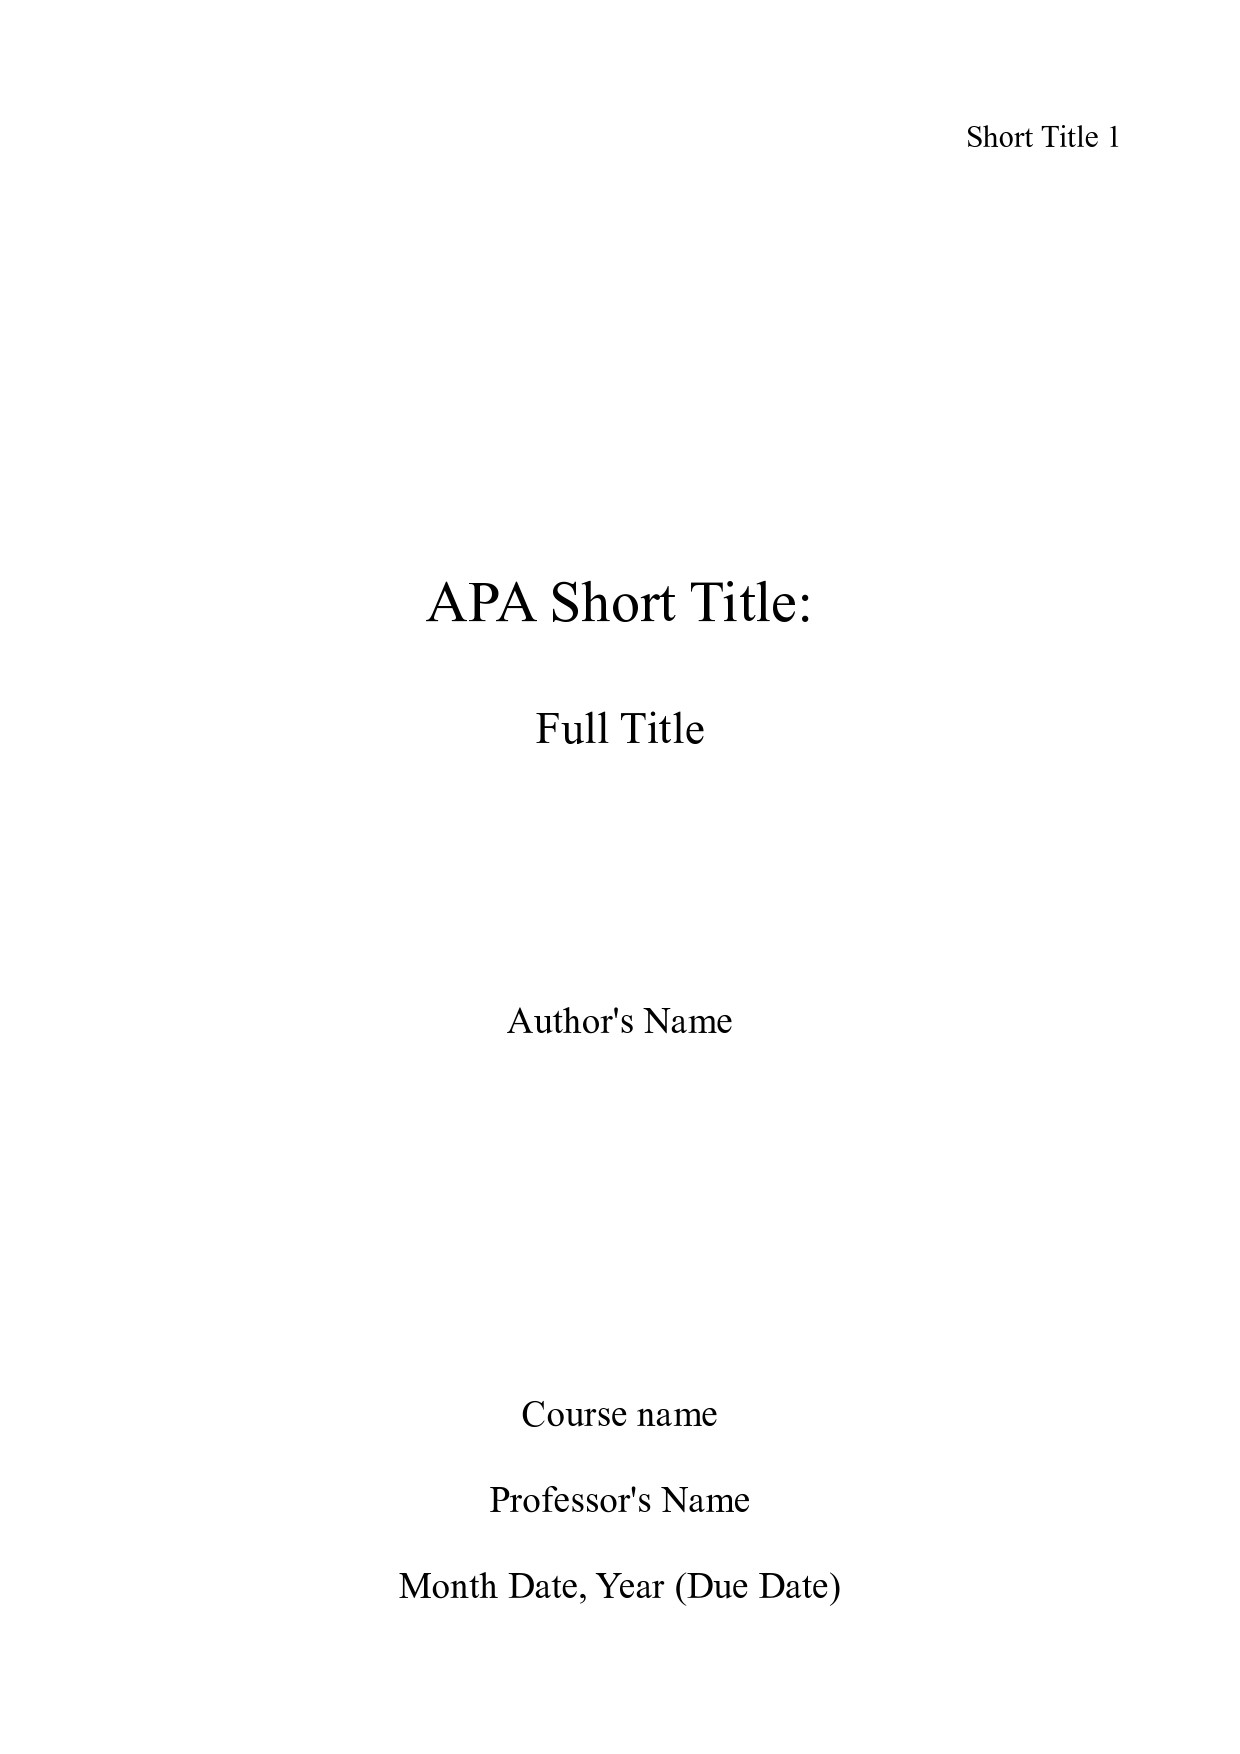 002 Apa Essay Cover Page Mla Format With Letter Best Of Writing Help Incredible Correct Title Front Research Full